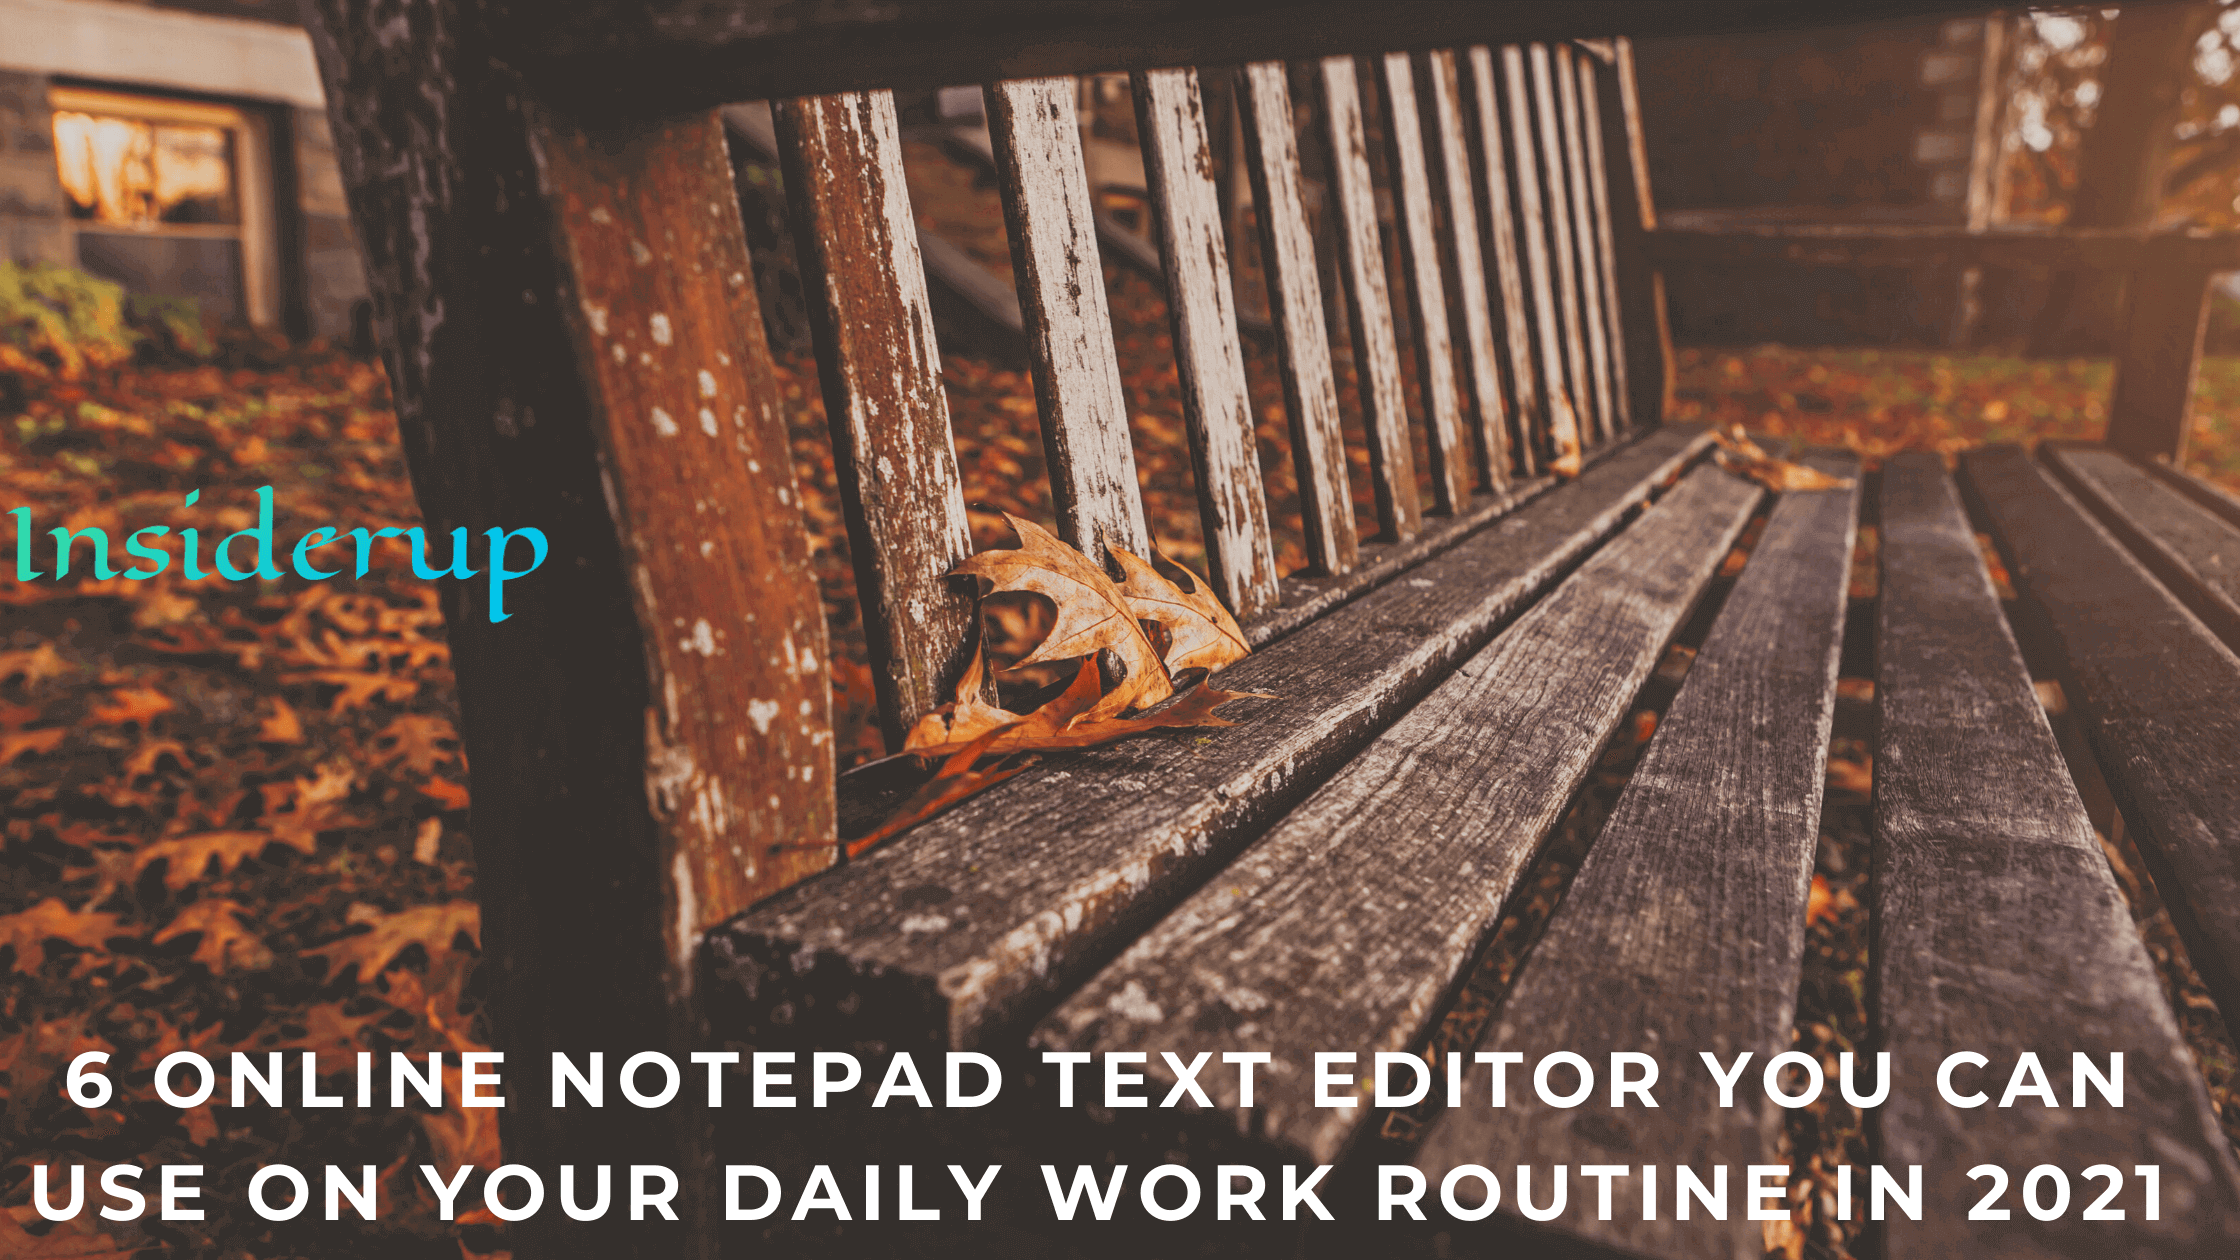 Online Notepad Text Editor You Can Use on Your Daily Work Routine